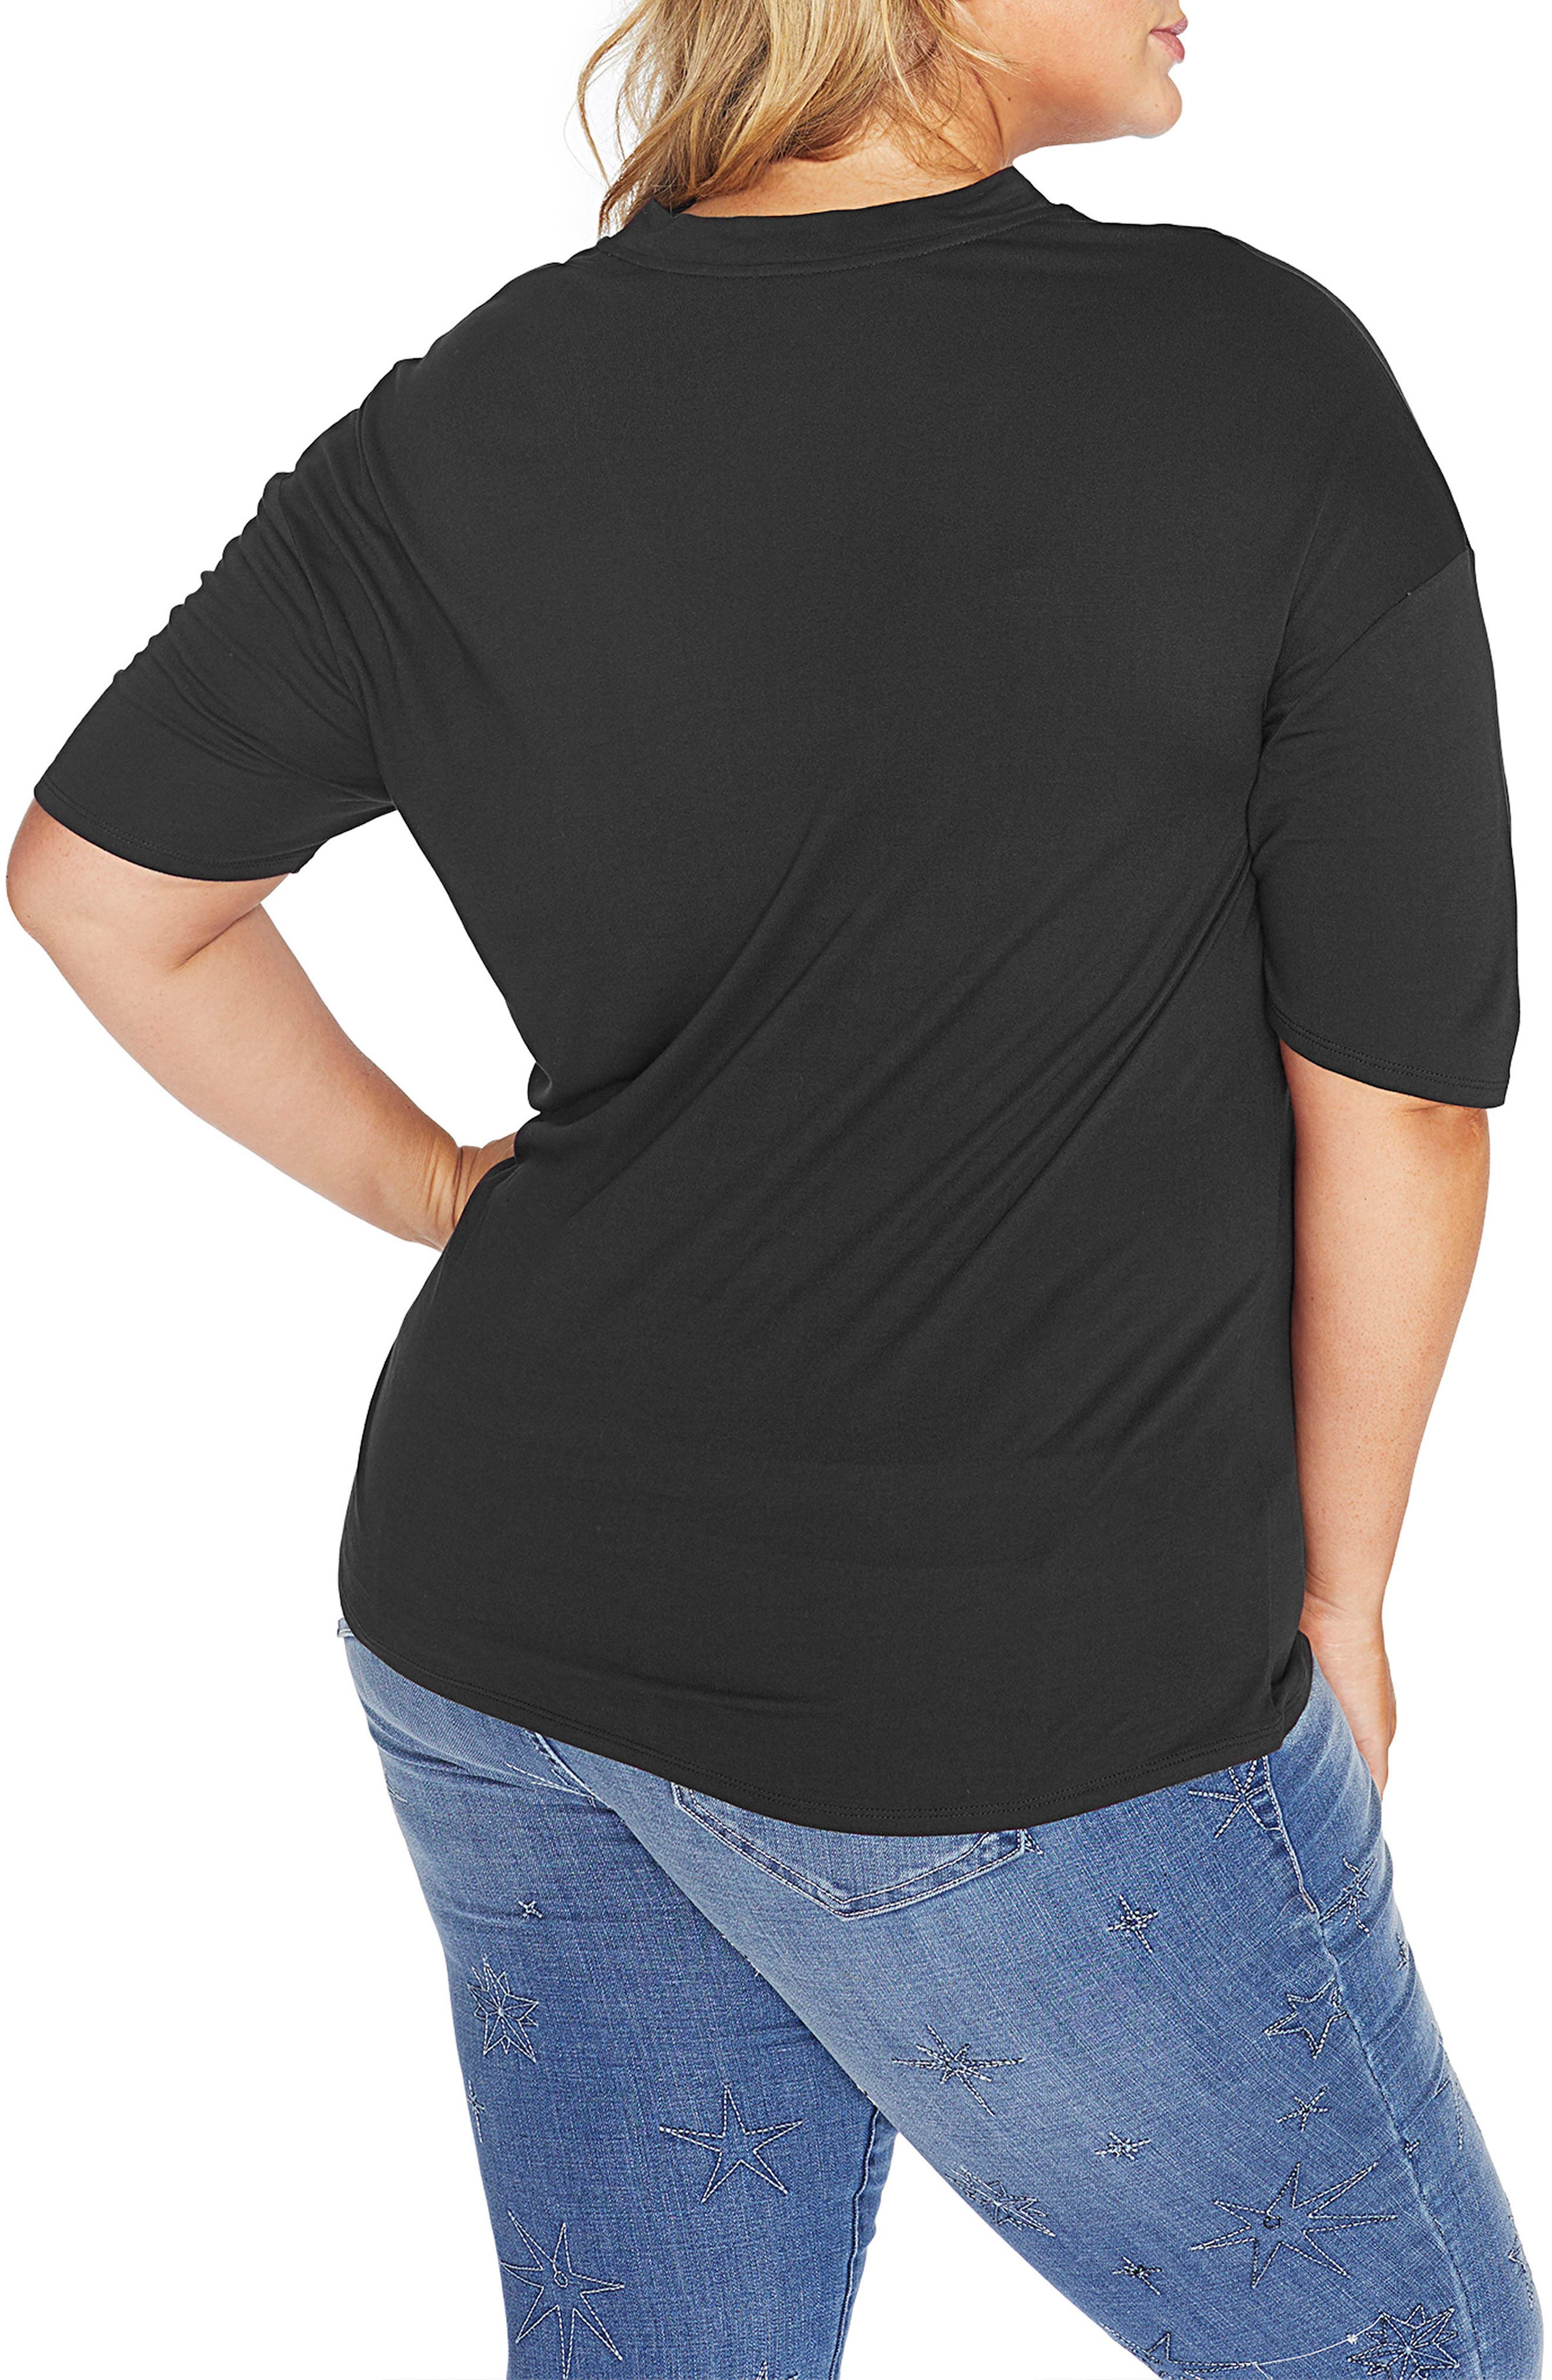 Knit Top with Neckband,                             Alternate thumbnail 2, color,                             002